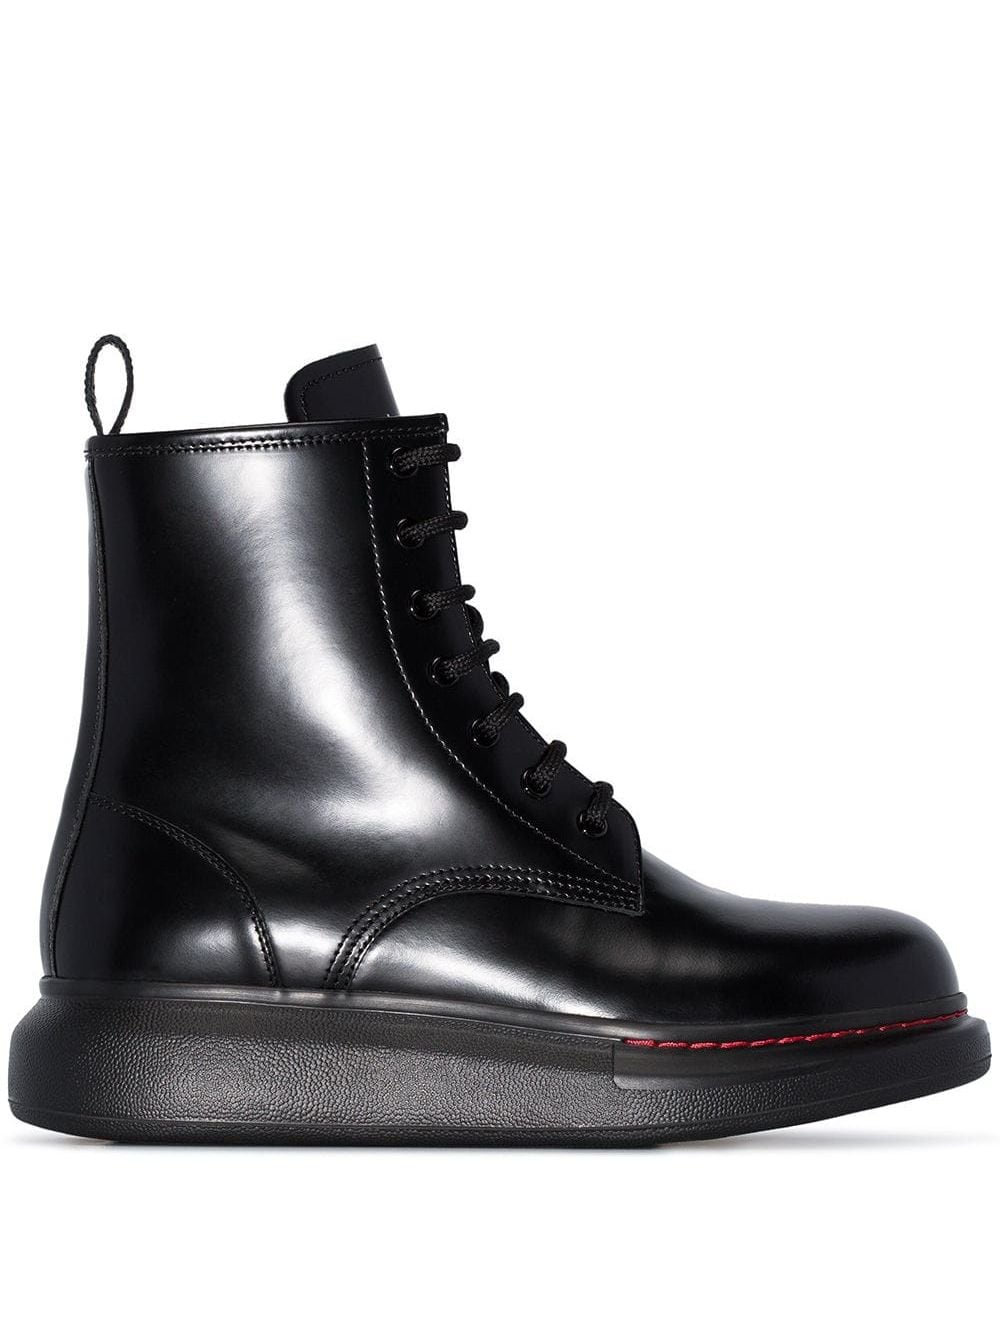 Hybrid Leather Ankle Boots